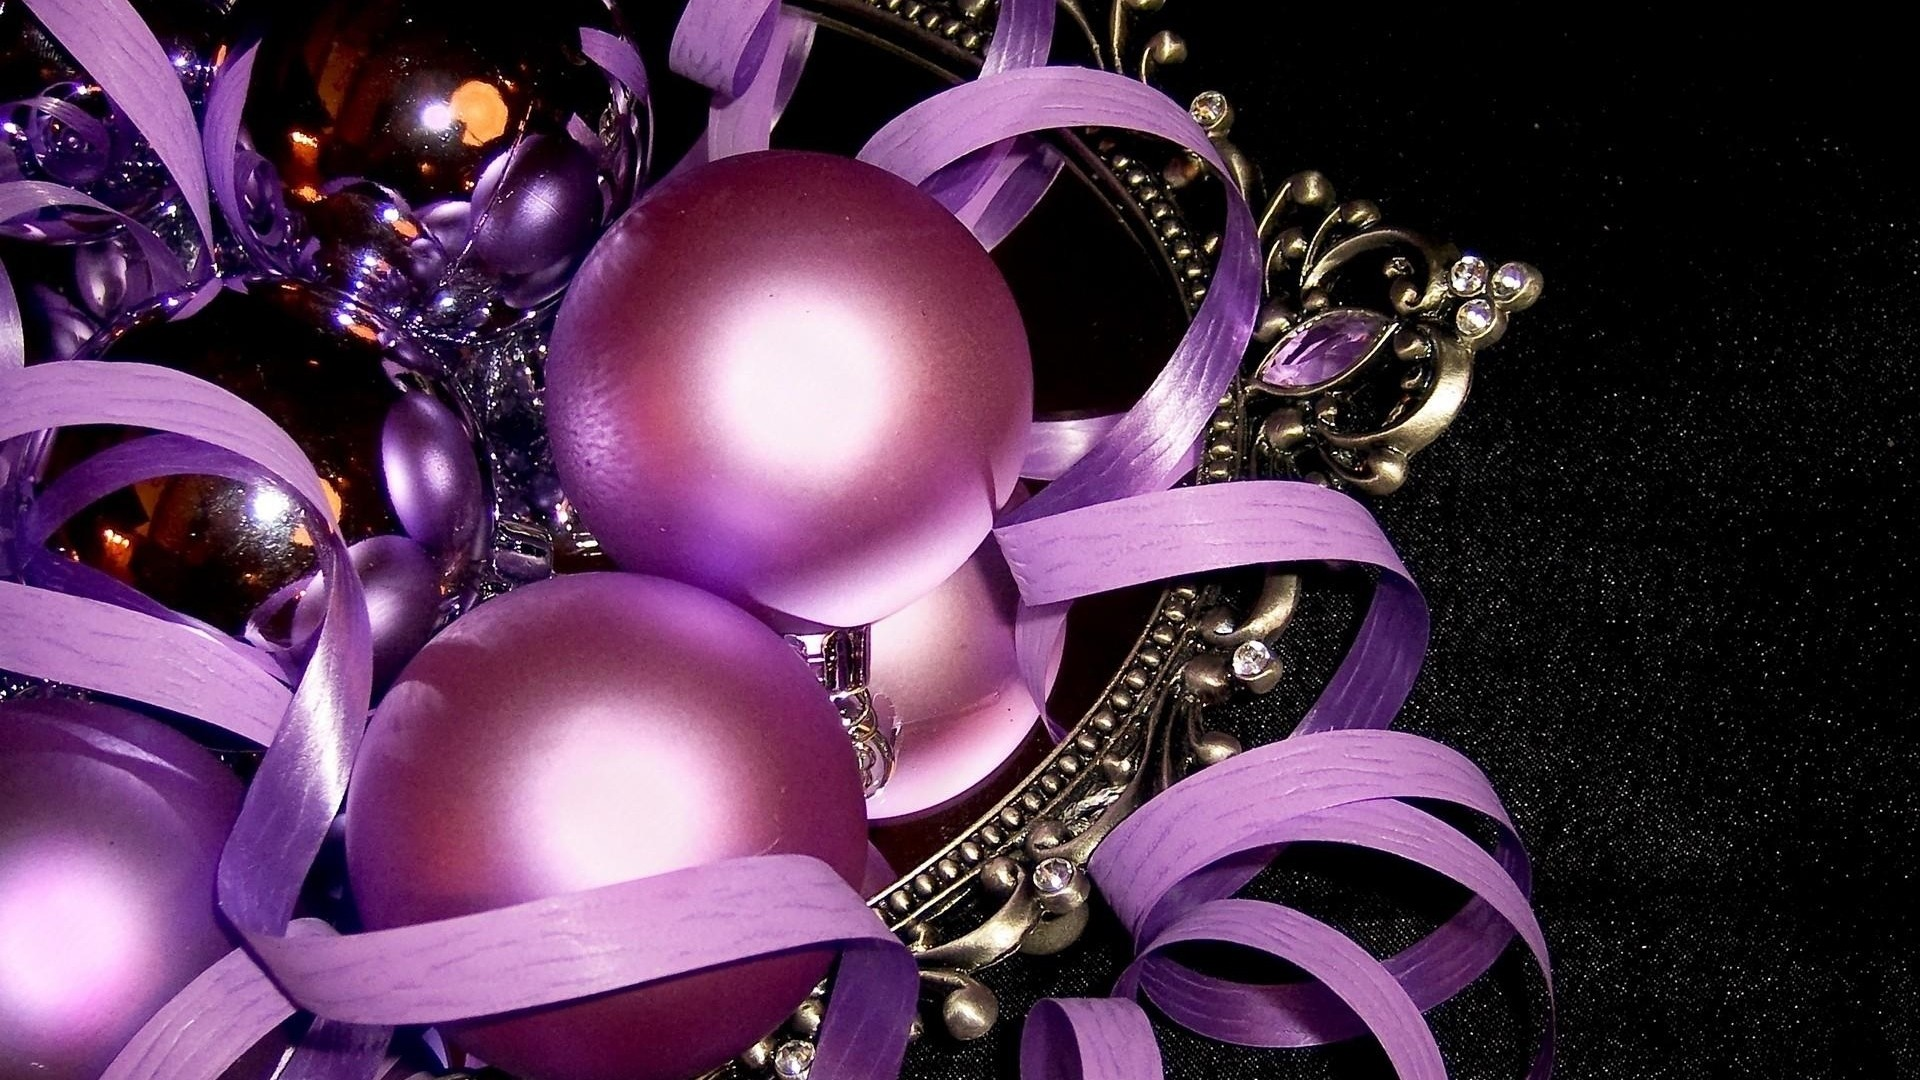 New Year Balloons Full HD Wallpaper